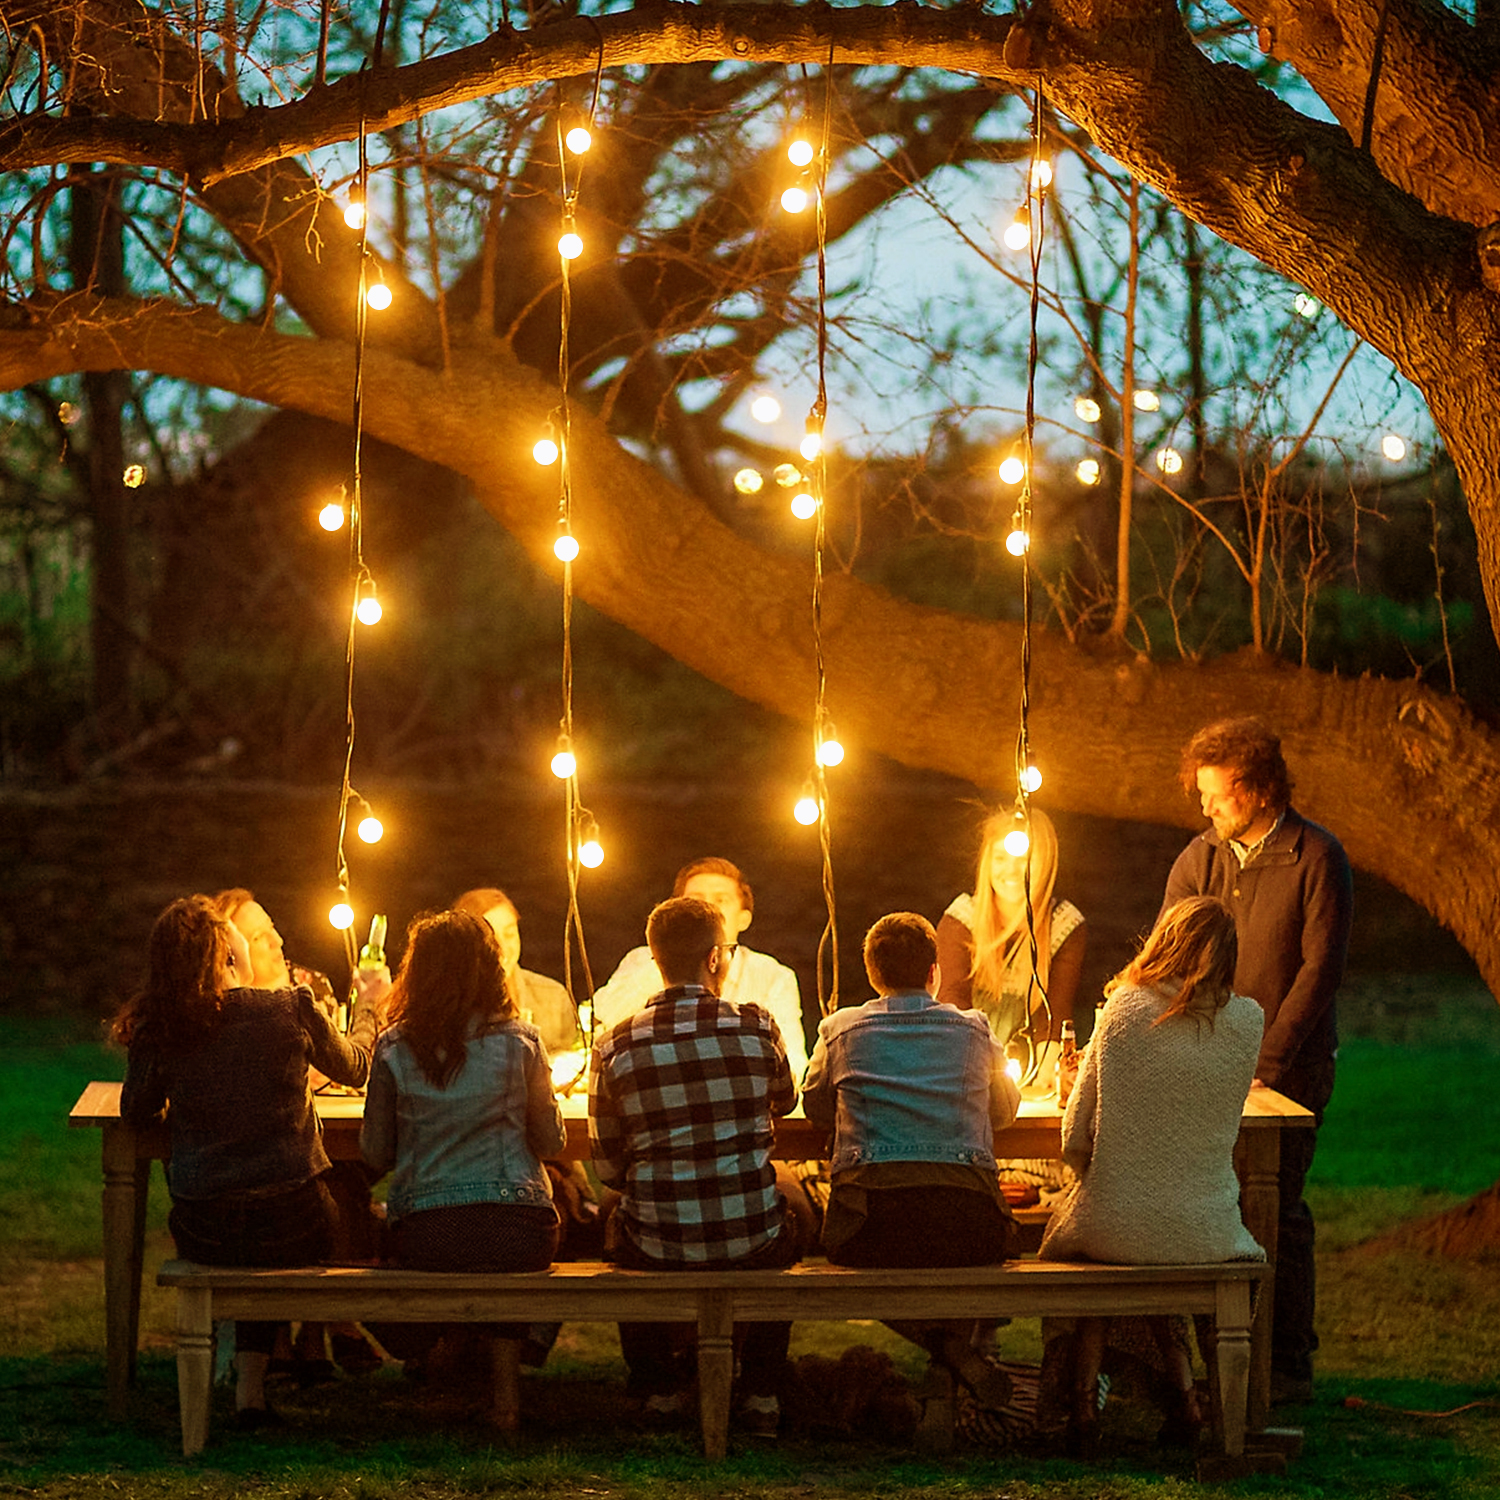 ACCEWIT String Lights With 28 Globe Bulbs Backyard Party Lighting In  Lighting Strings From Lights U0026 Lighting On Aliexpress.com   Alibaba Group